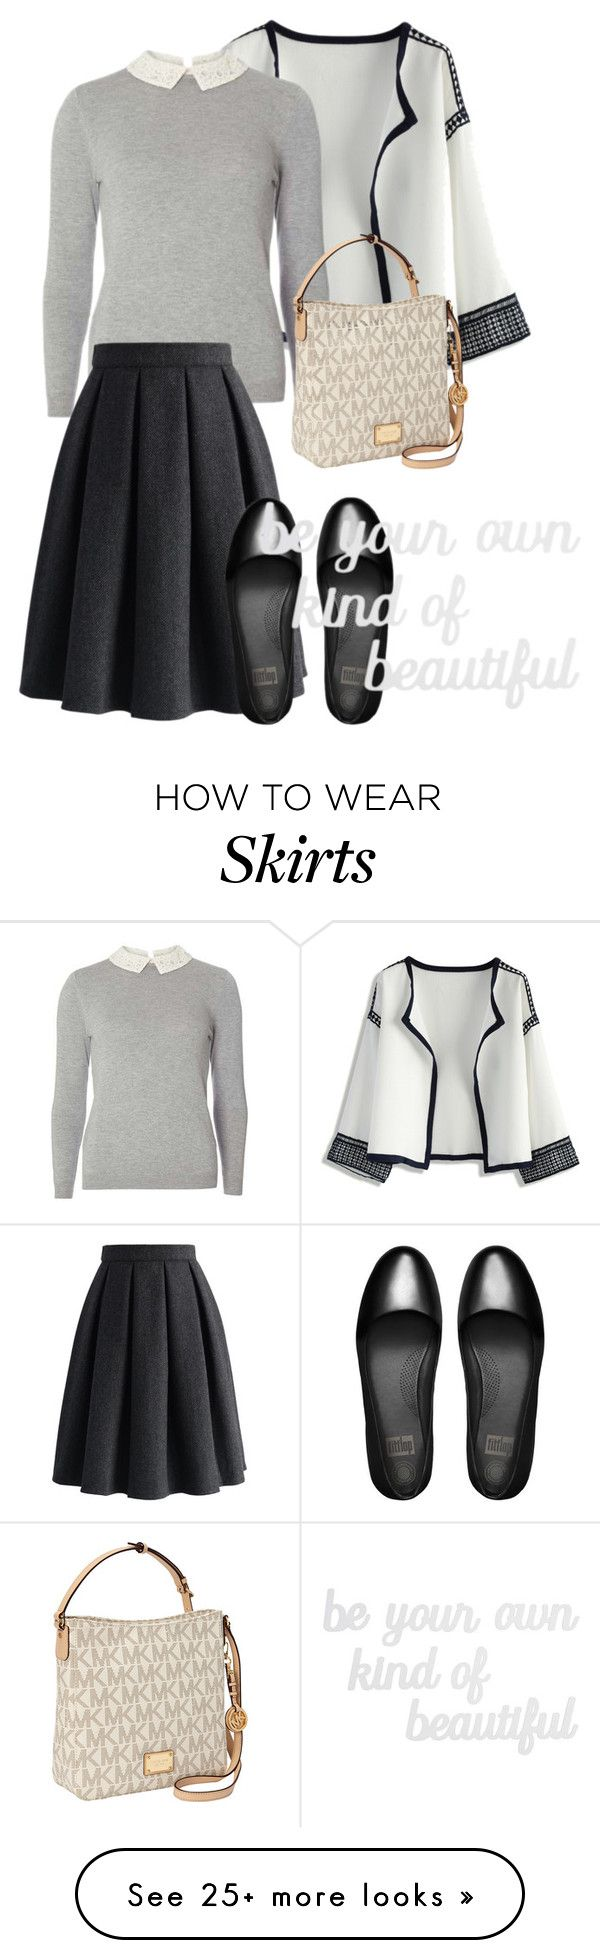 """""""bag"""" by masayuki4499 on Polyvore featuring Chicwish, Dorothy Perkins, MICHAEL Michael Kors, FitFlop and PBteen"""